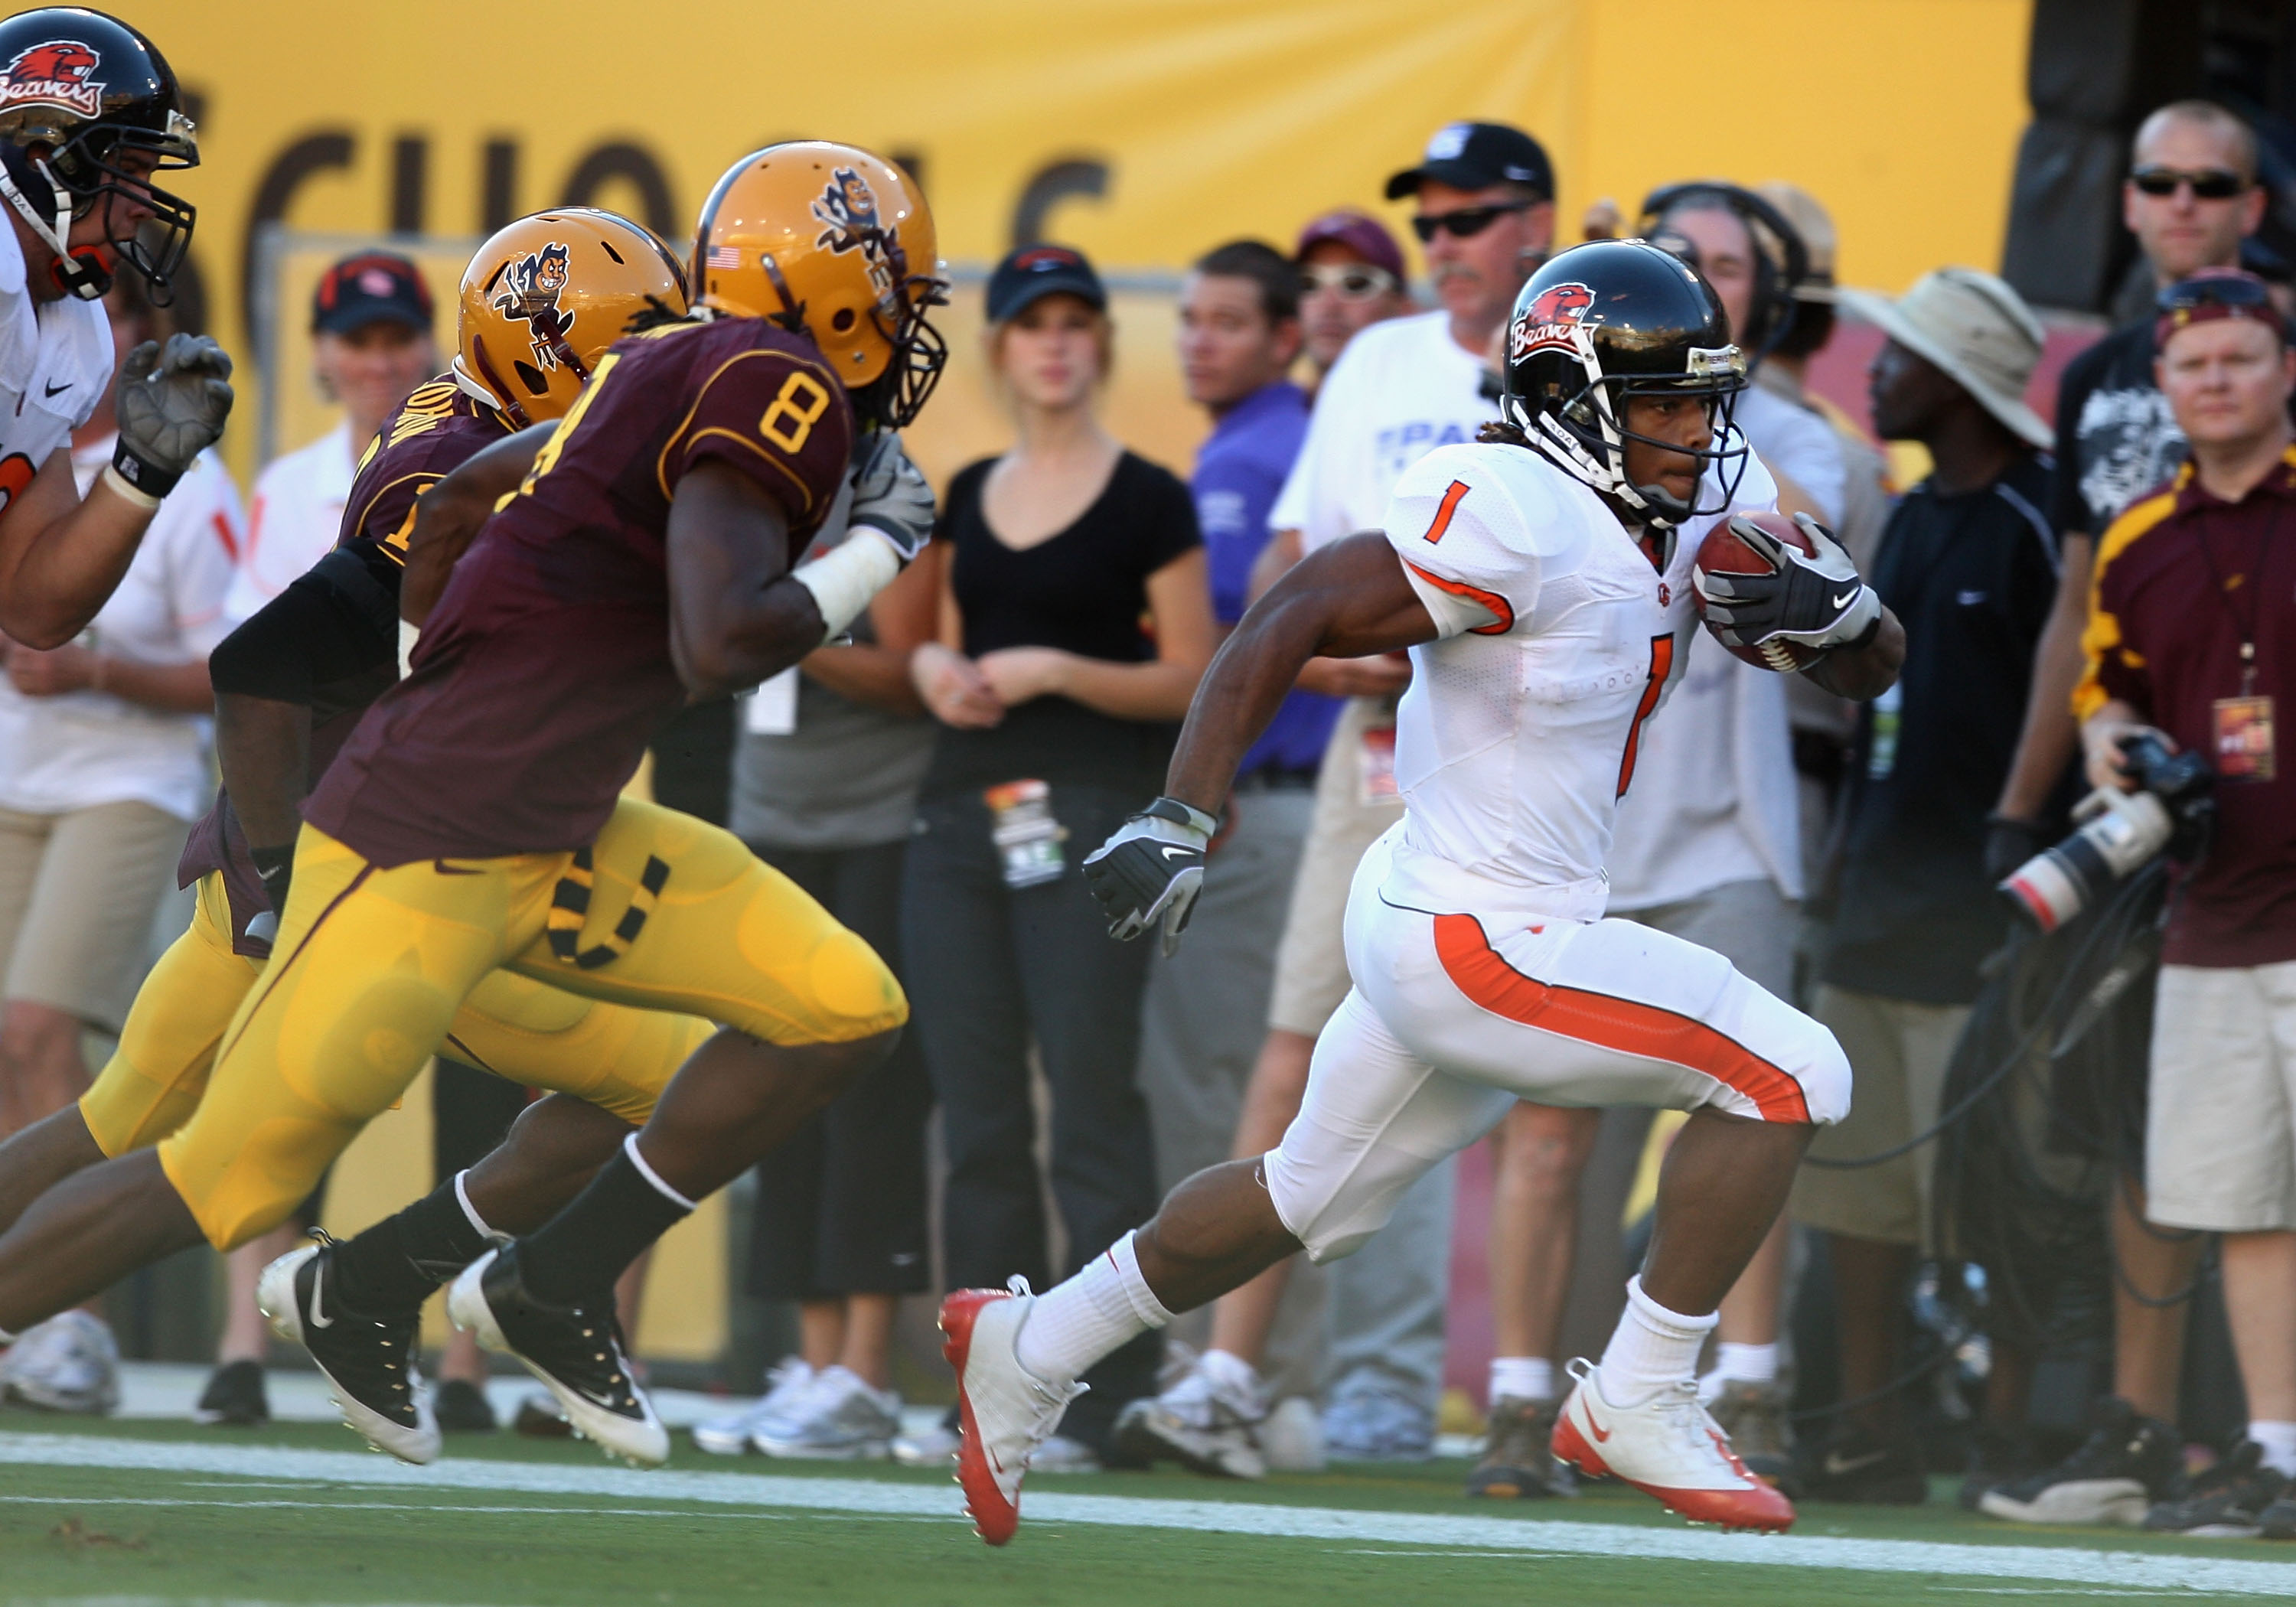 TEMPE, AZ - OCTOBER 03:  Runningback Jacquizz Rodgers #1 of the Oregon State Beavers rushes the ball for a 32 yard touchdown against the Arizona State Sun Devils during the first quarter of the college football game at Sun Devil Stadium on October 3, 2009